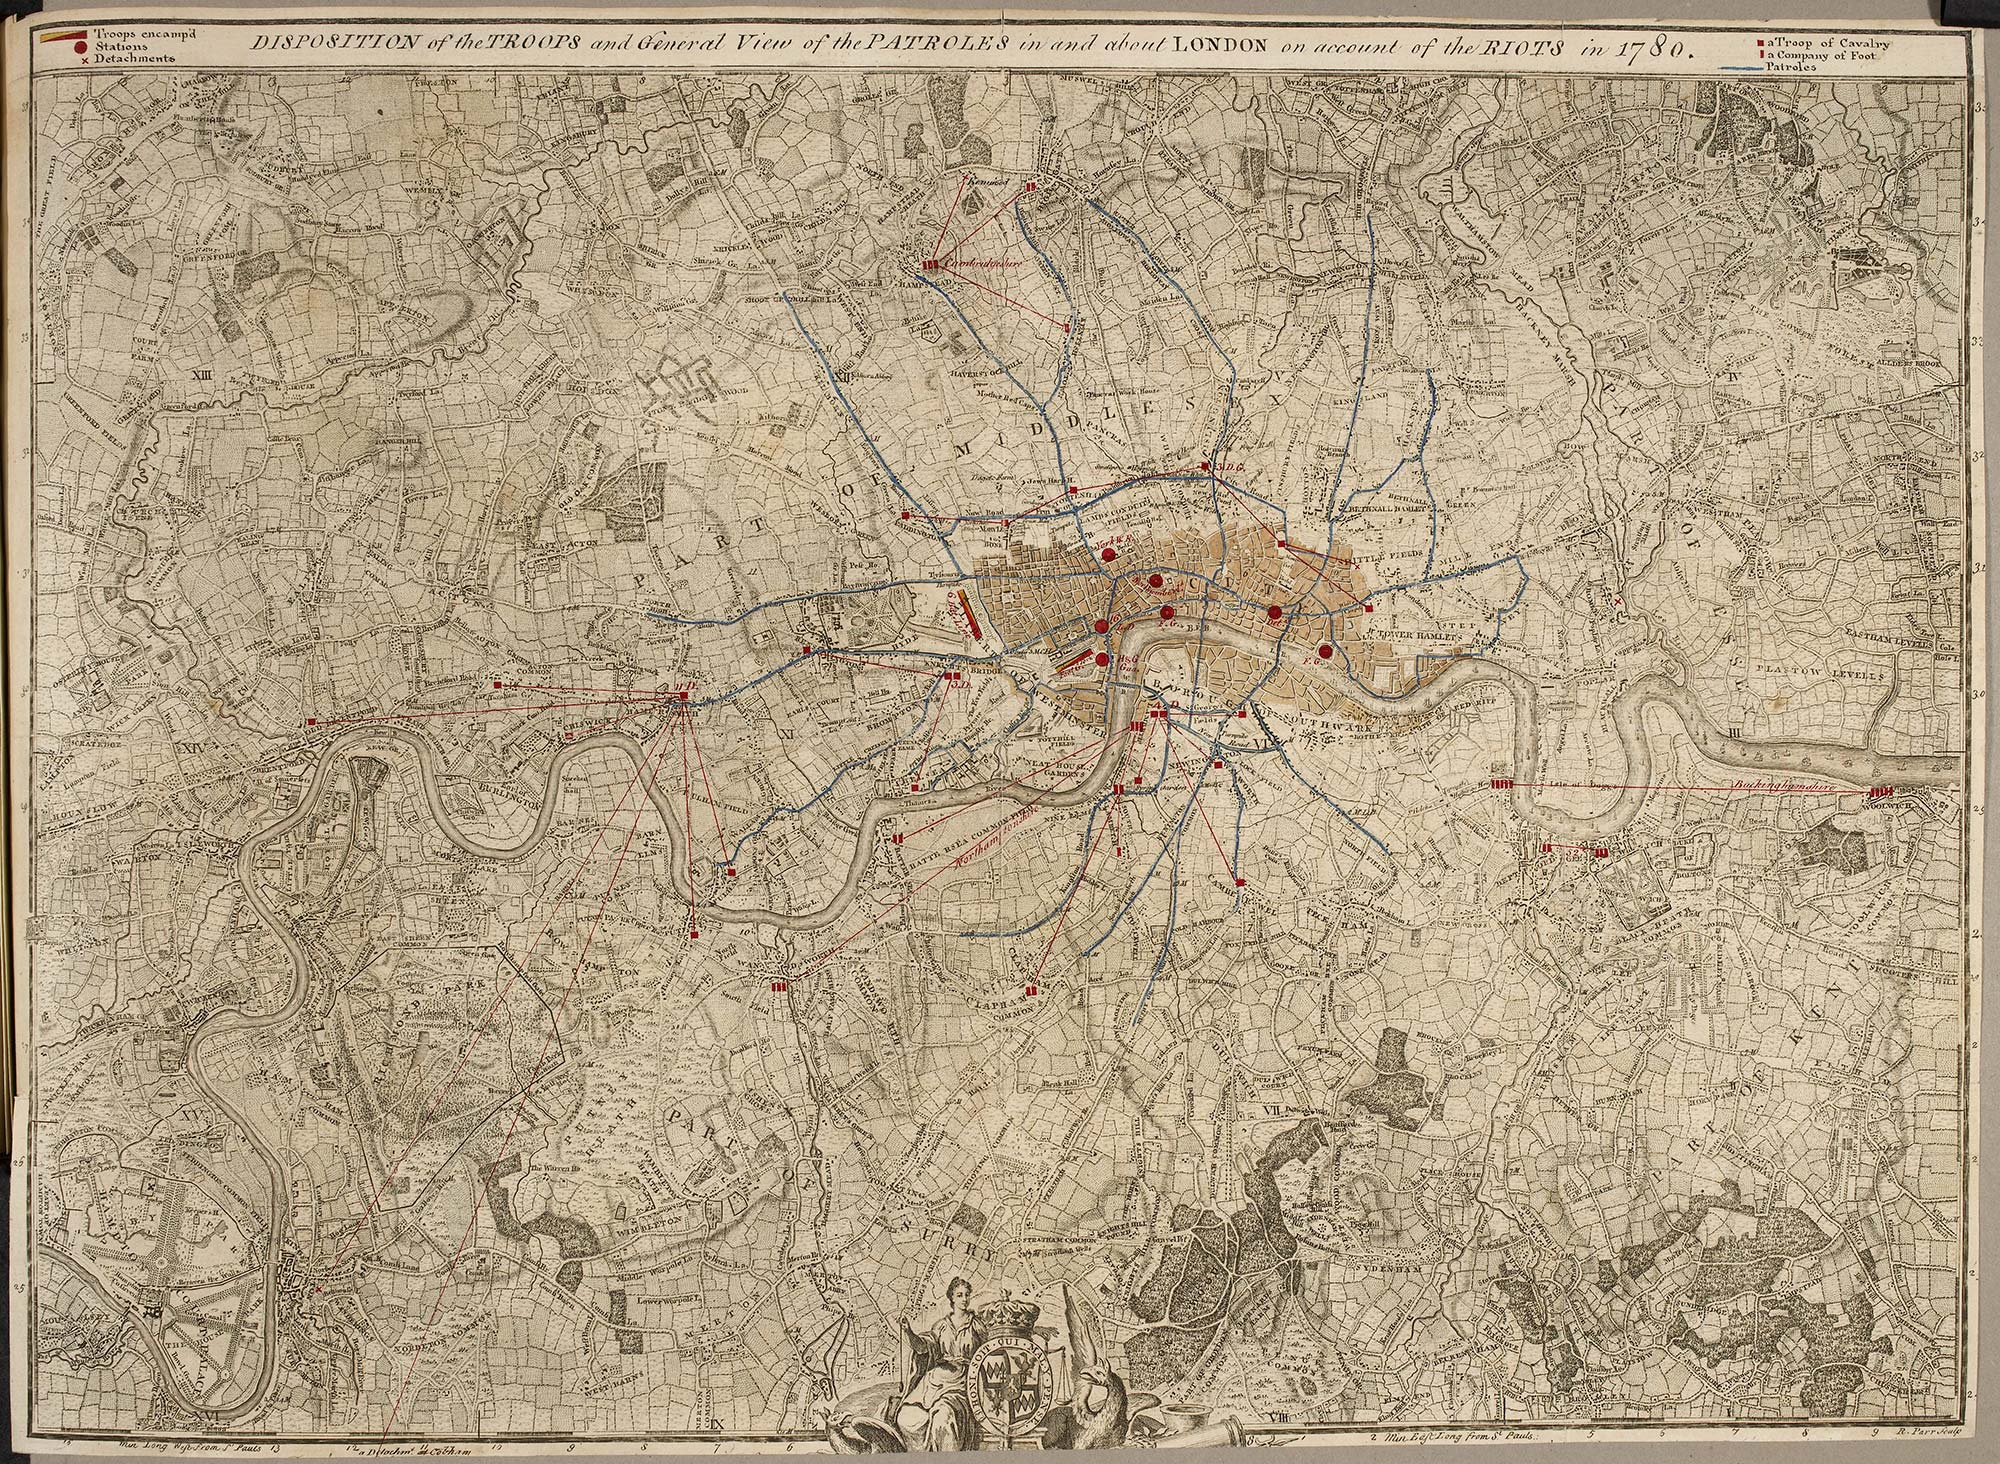 Military map showing the areas in which troops were deployed during the Gordon riots, 1780